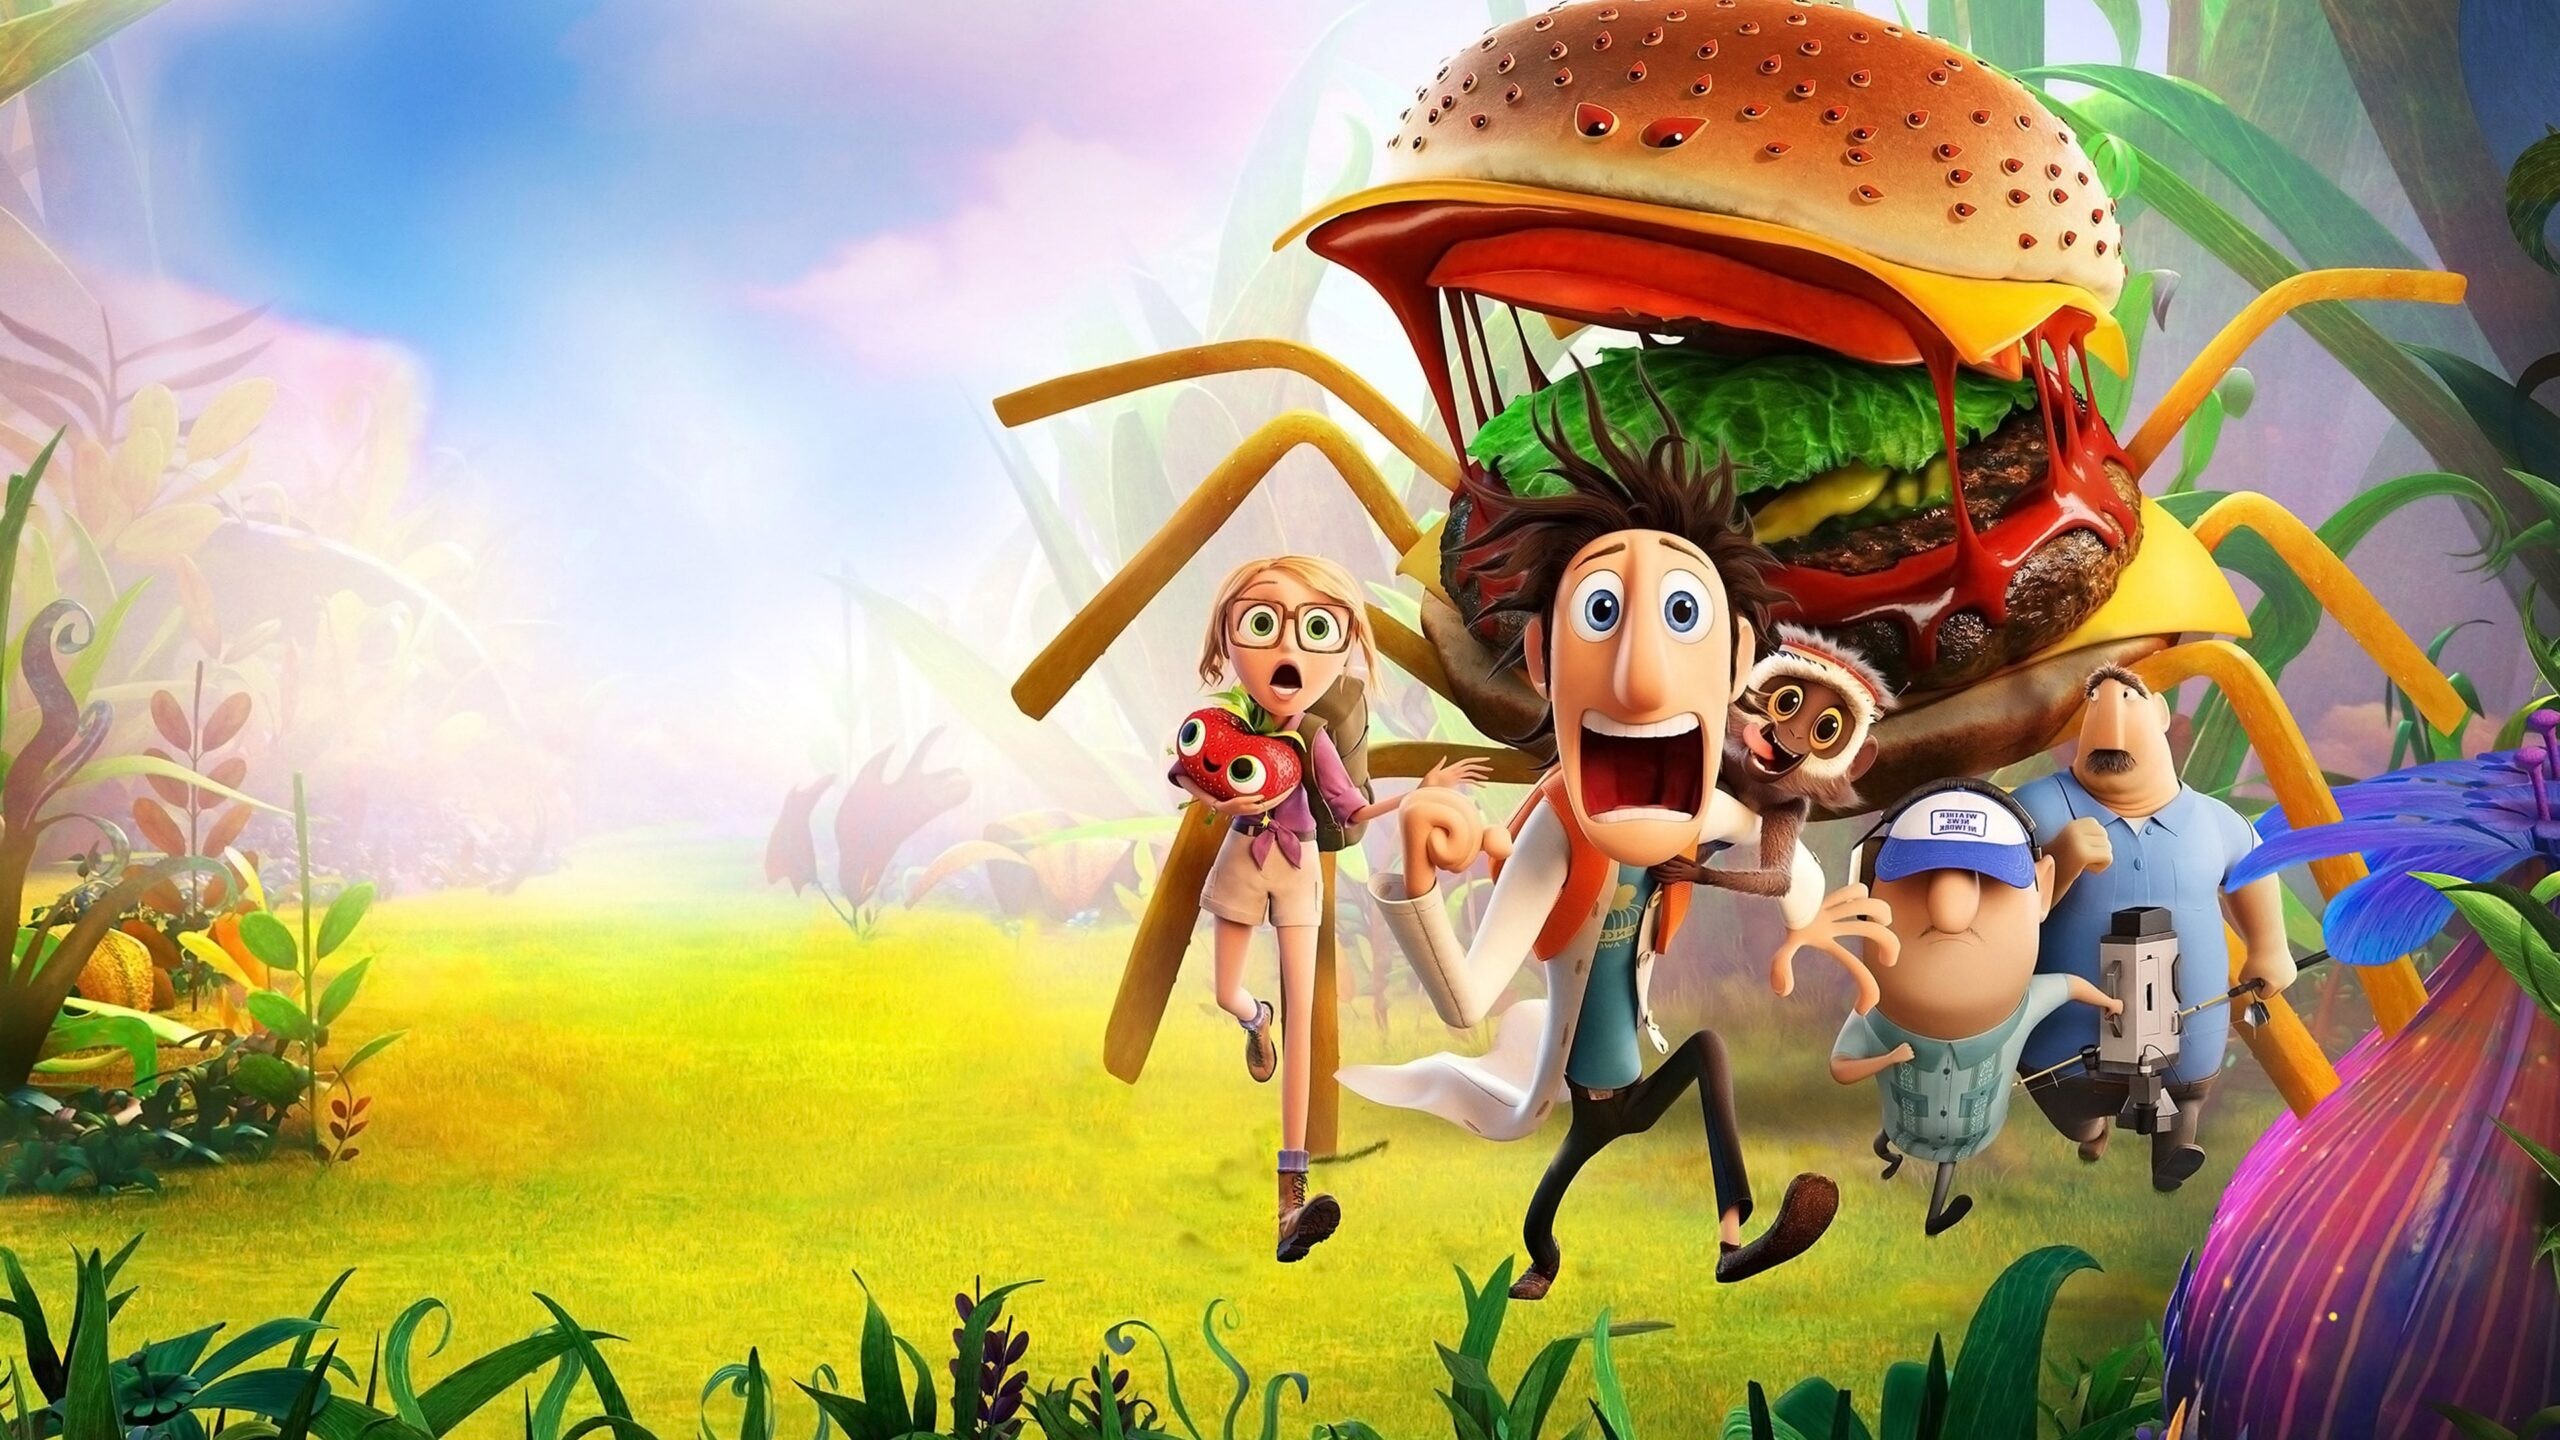 Cloudy with a Chance of Meatballs 2 Movie Streaming Online Watch on Google Play, Sony LIV, Youtube, iTunes